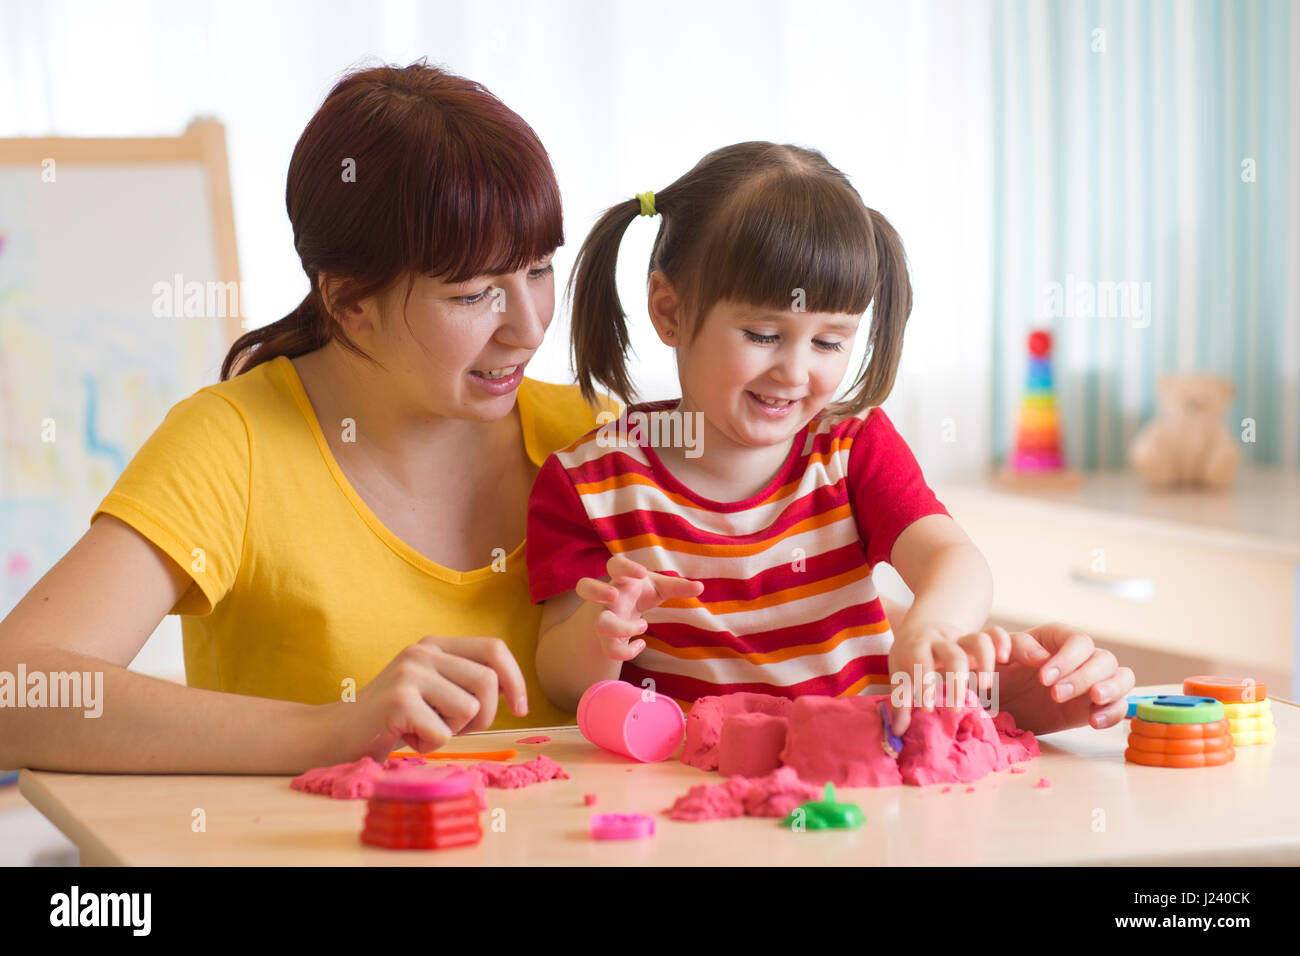 A cute little little girl and her mom playing with kinetic sand at home - Stock Image